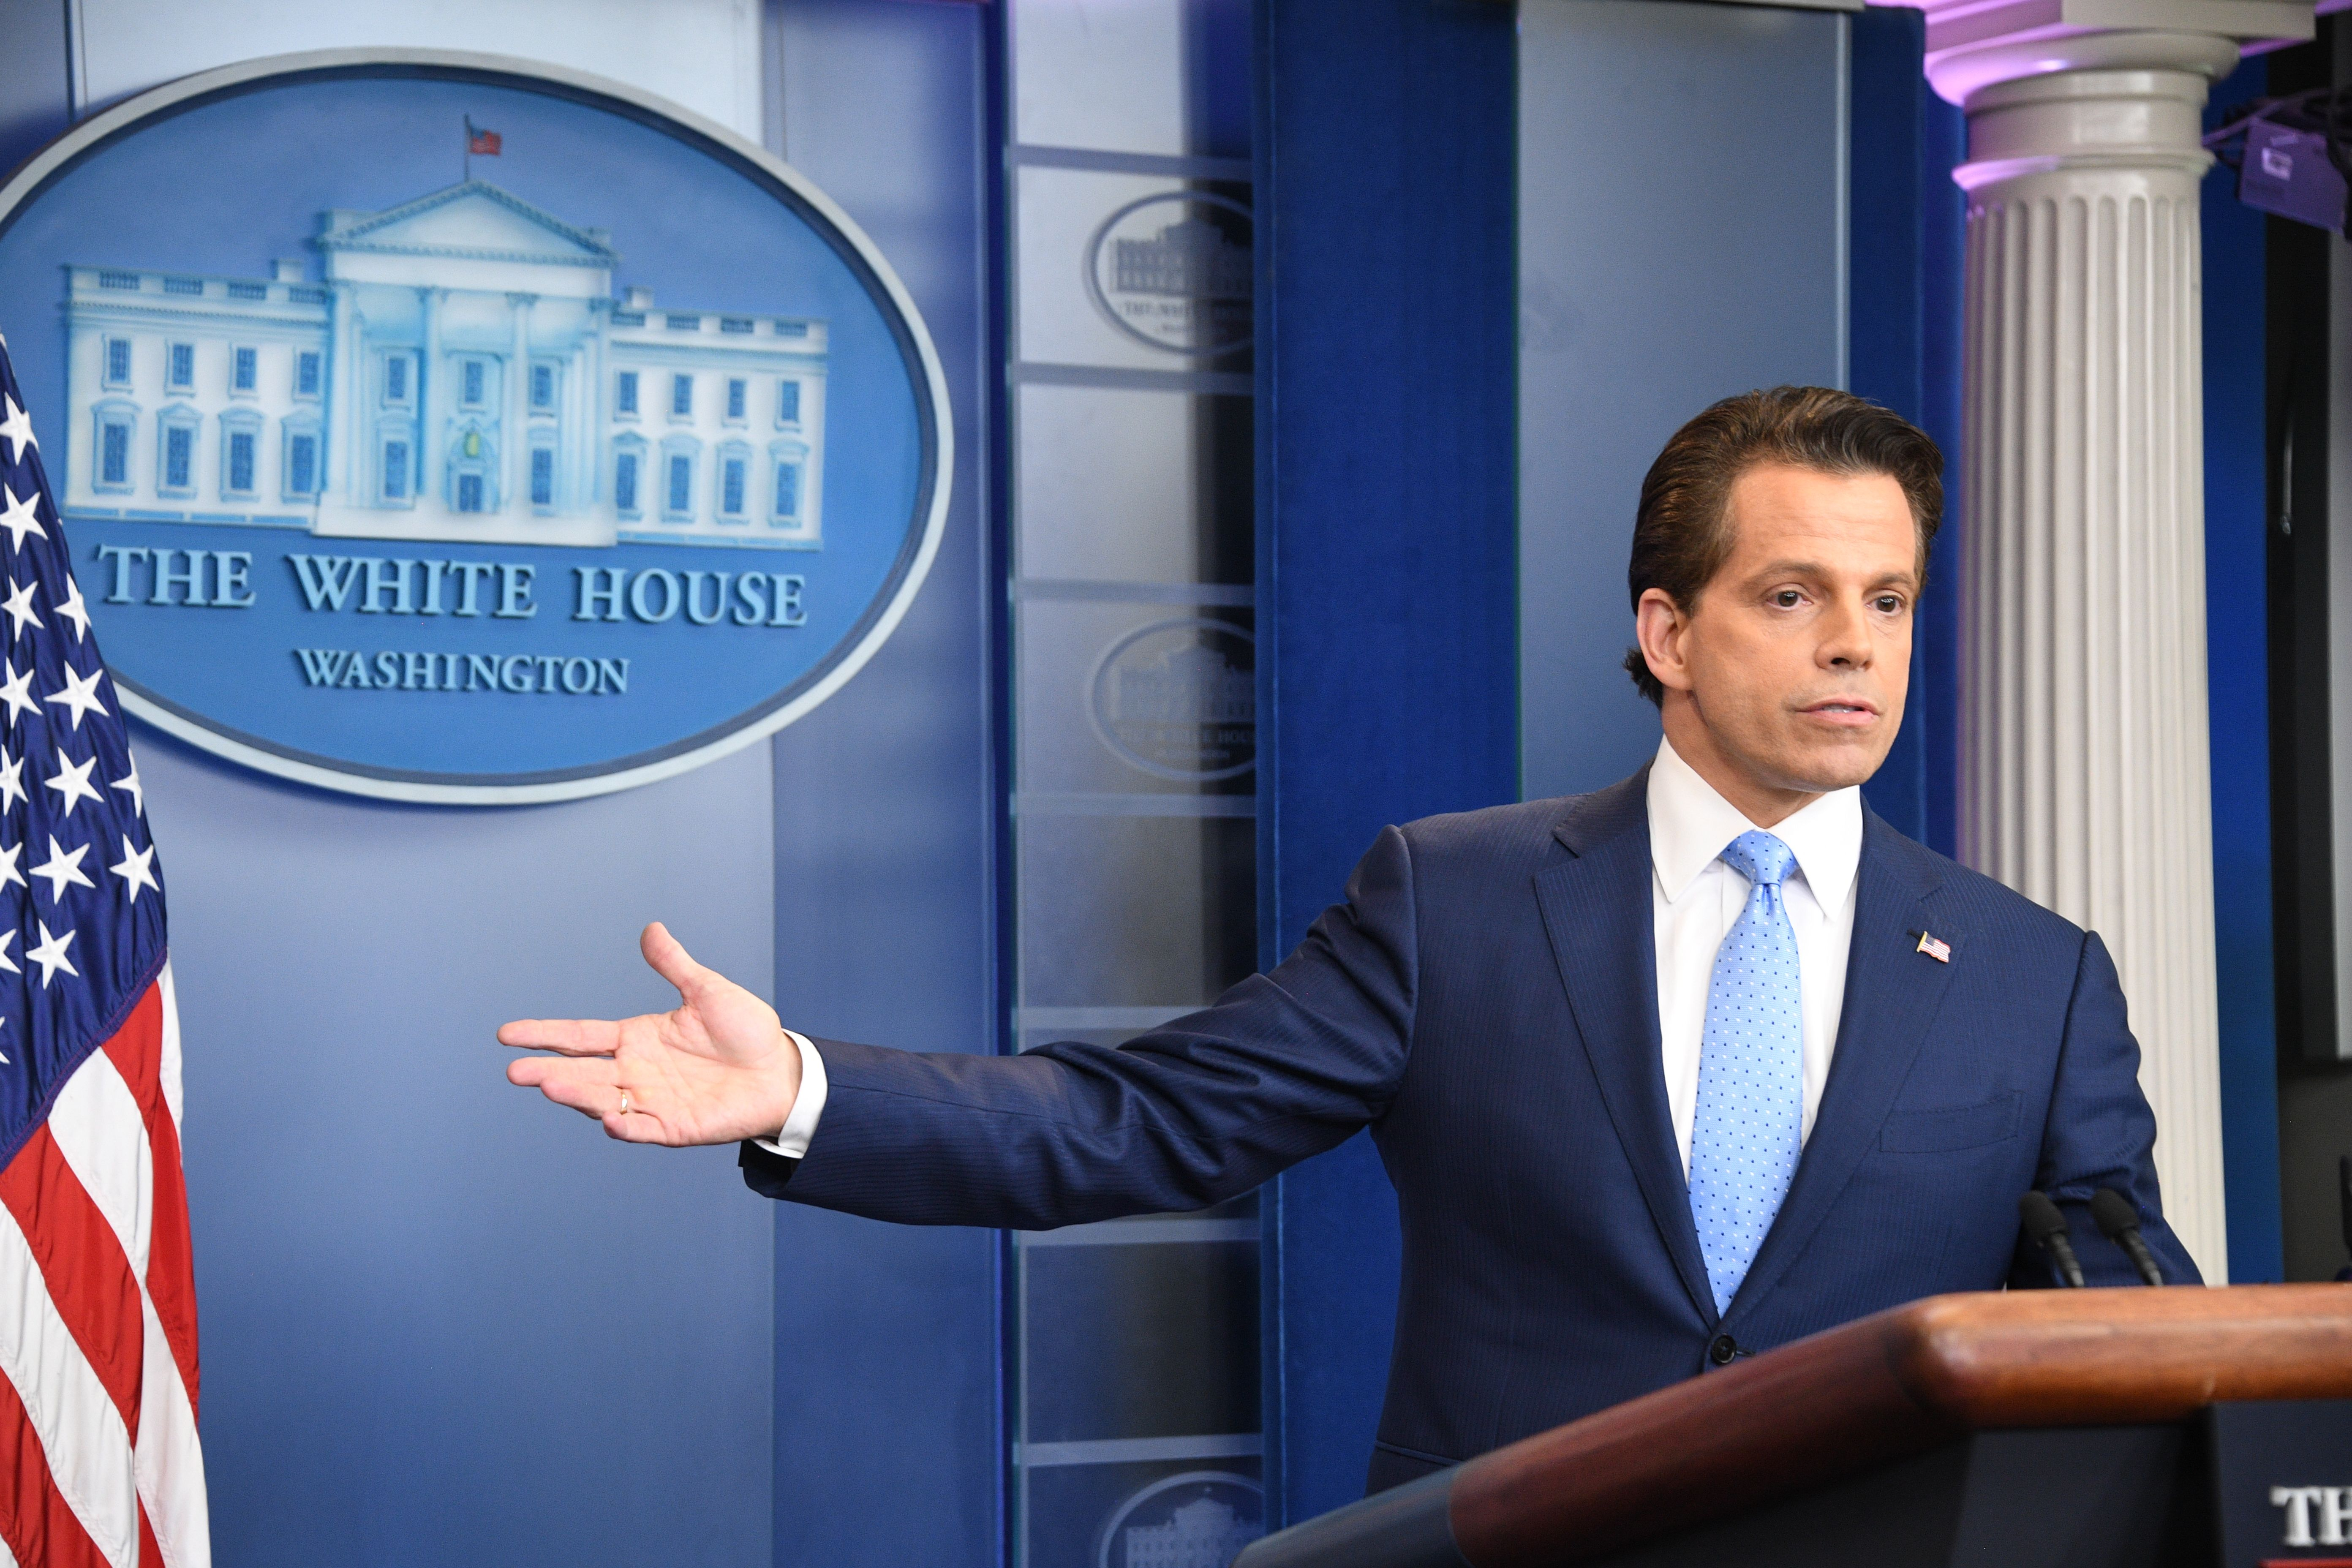 Anthony Scaramucci, who was briefly appointed White House communications director, speaks during a press briefing at the White House in Washington, D.C. on July 21, 2017.